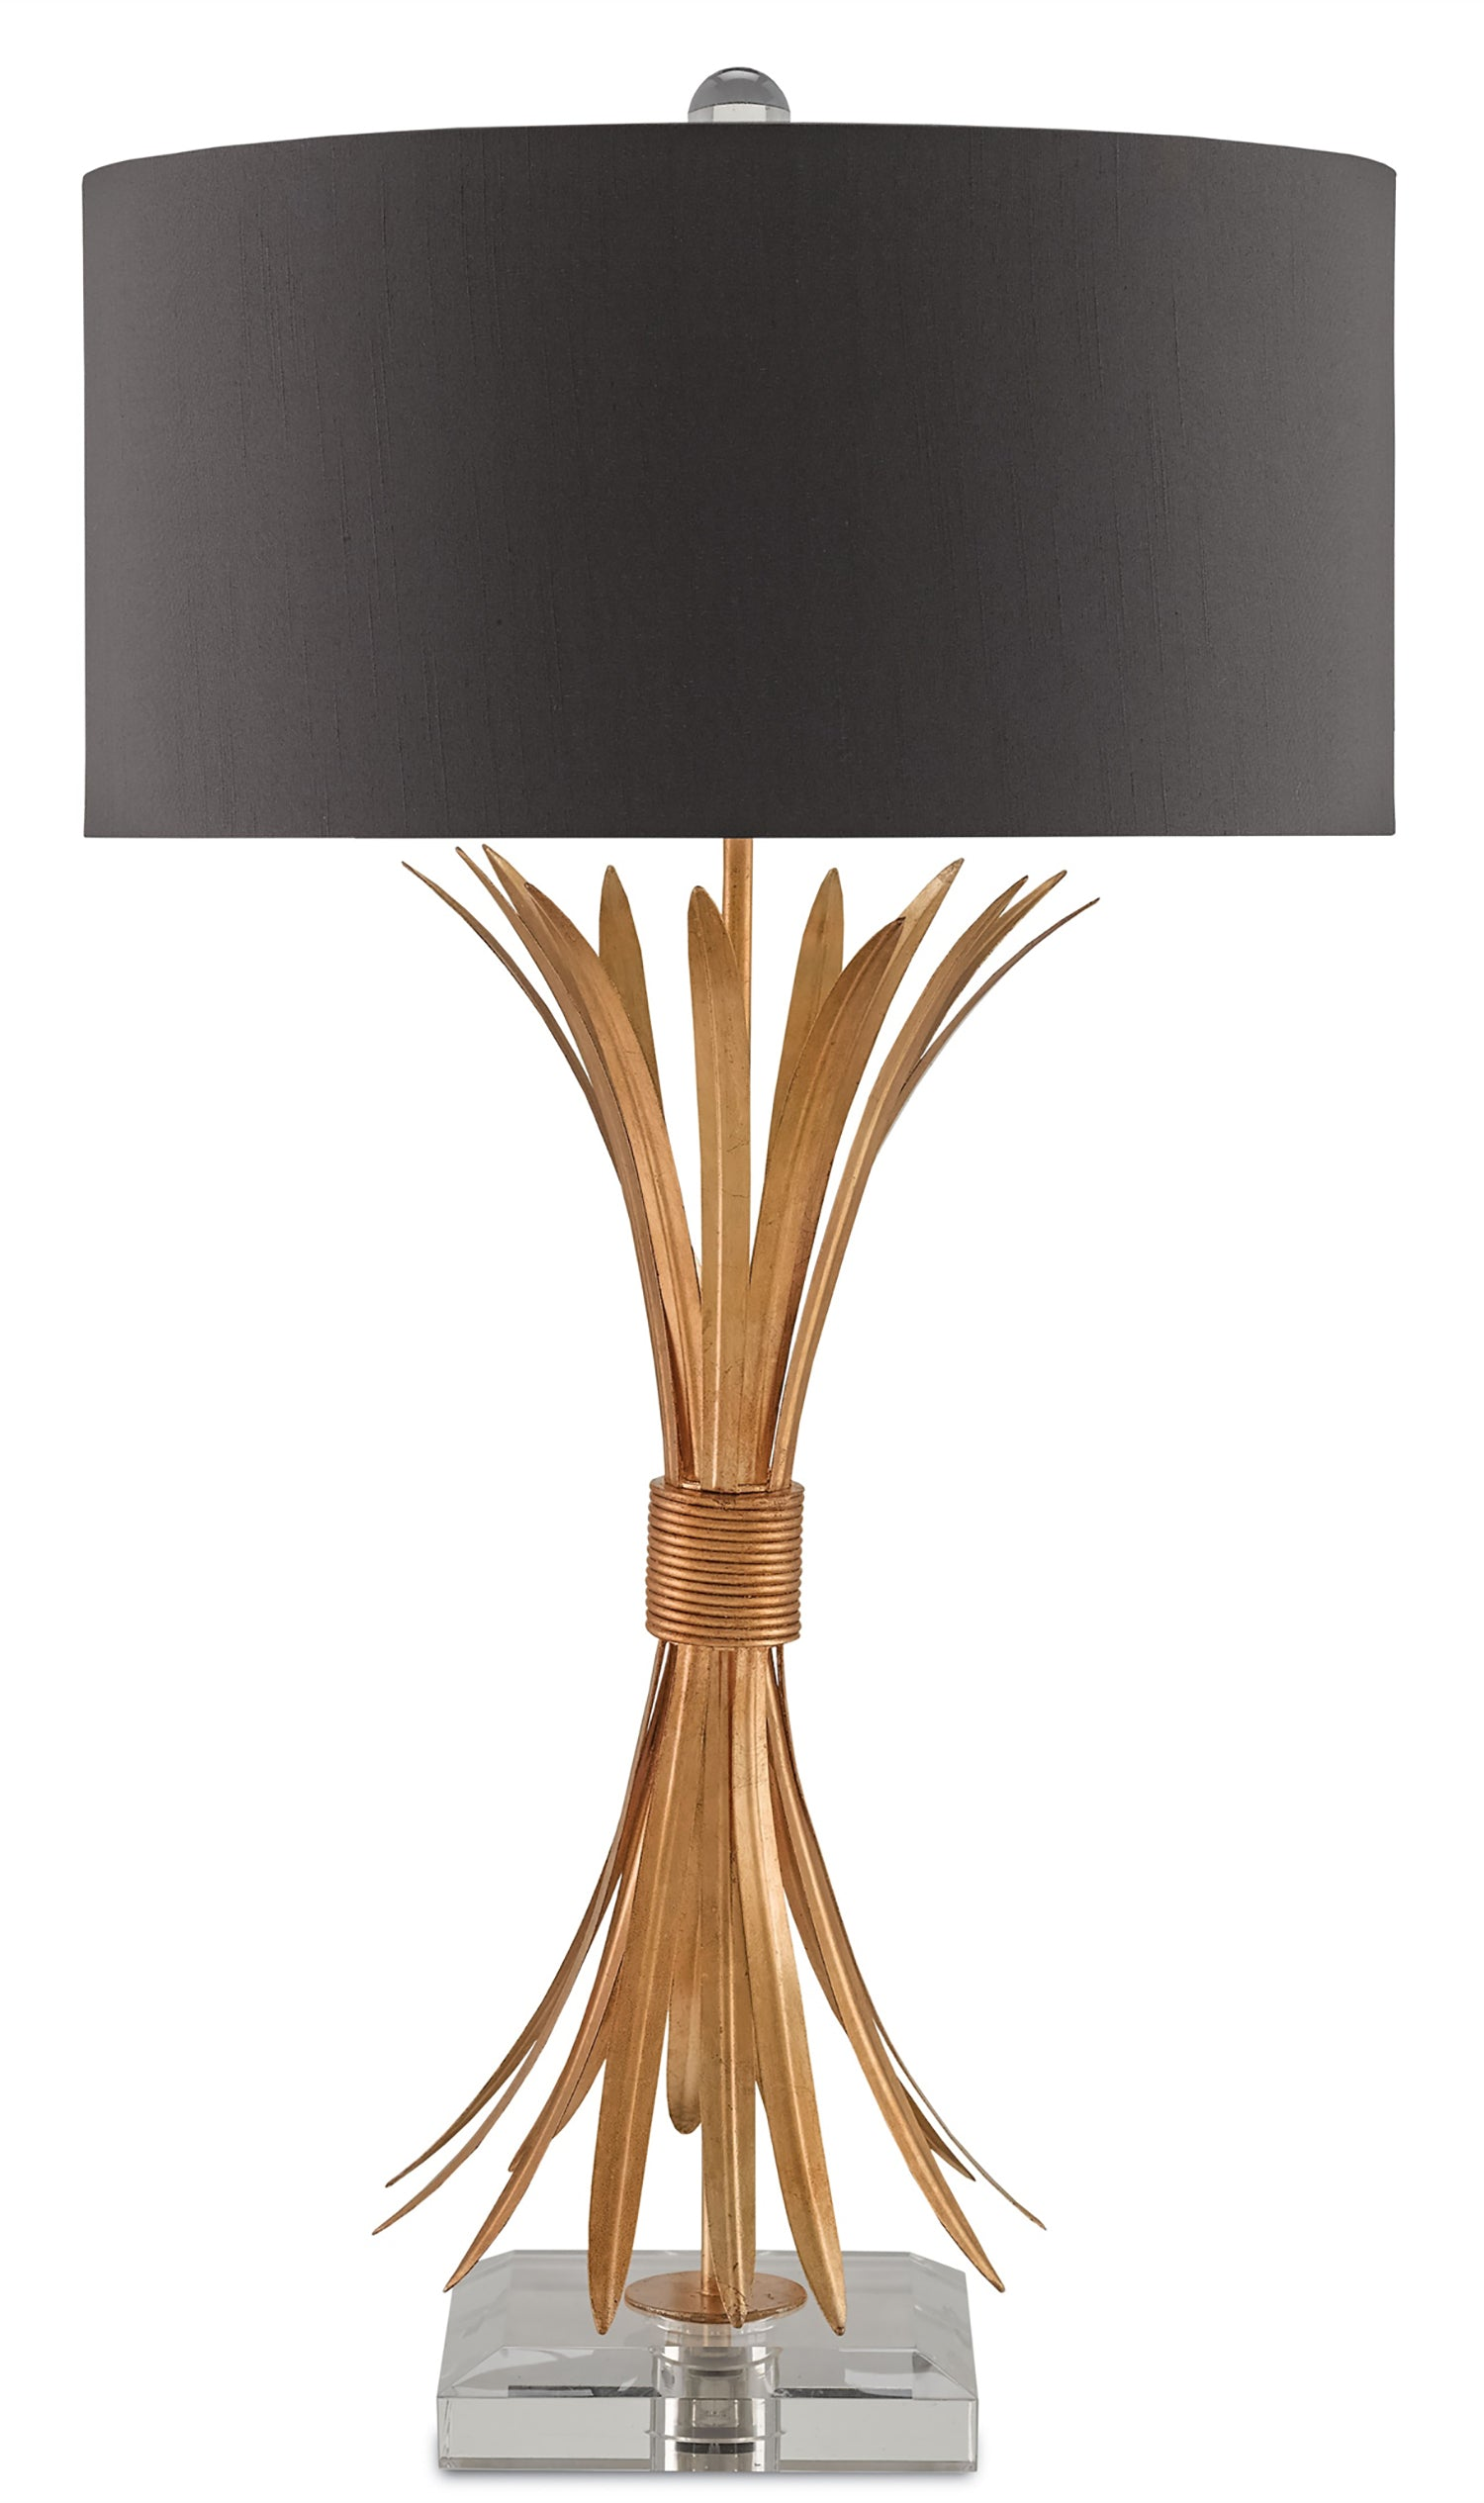 Idyll Table Lamp